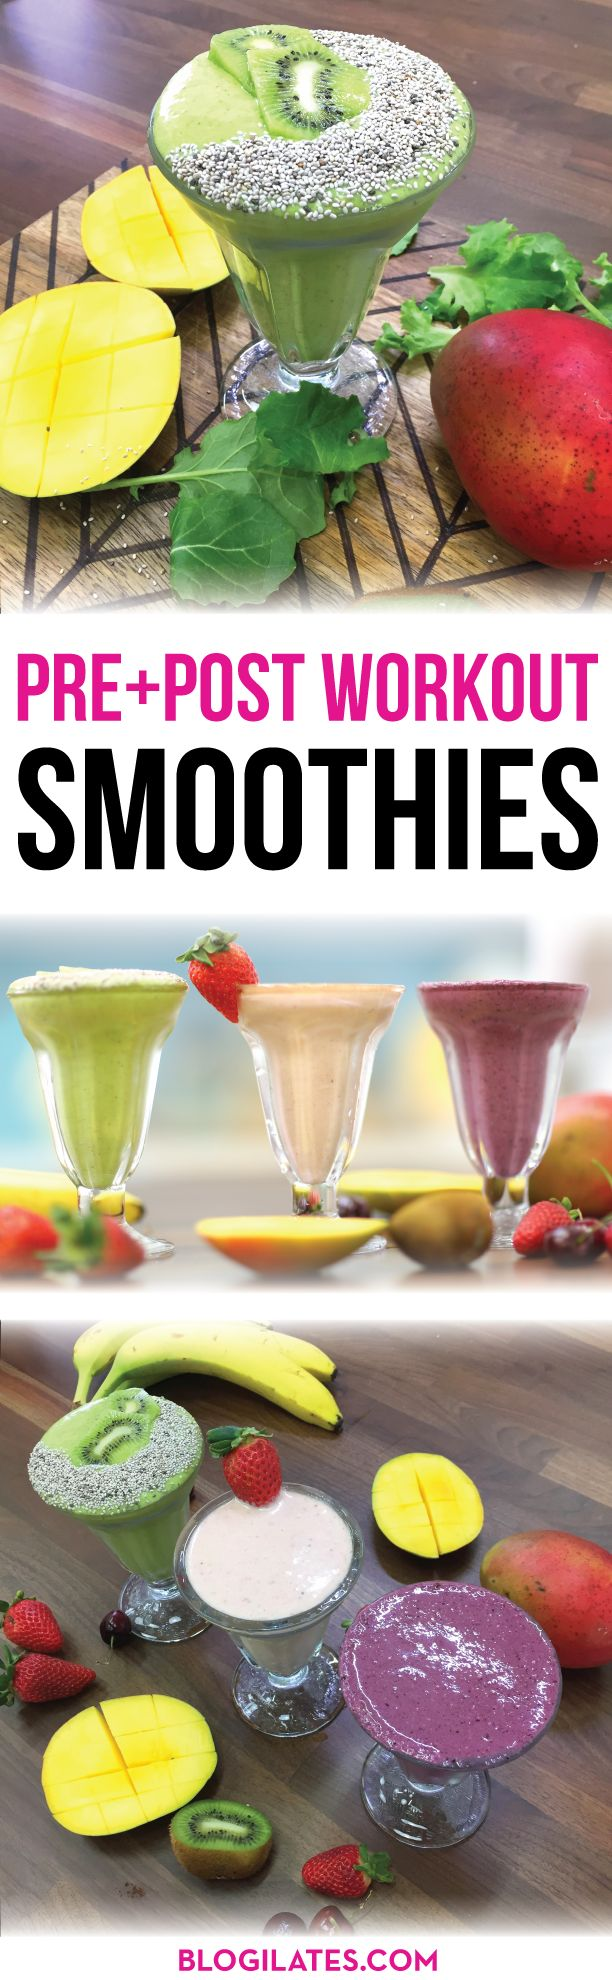 Ever wonder what you should drink before and after your workout? These are the best pre-workout, post-workout, and metabolism boosting smoothies! Learn to make the PB & J Shake, Berry Muffin Smoothie, and the Metabolic Blast Smoothie. www.blogilates.com